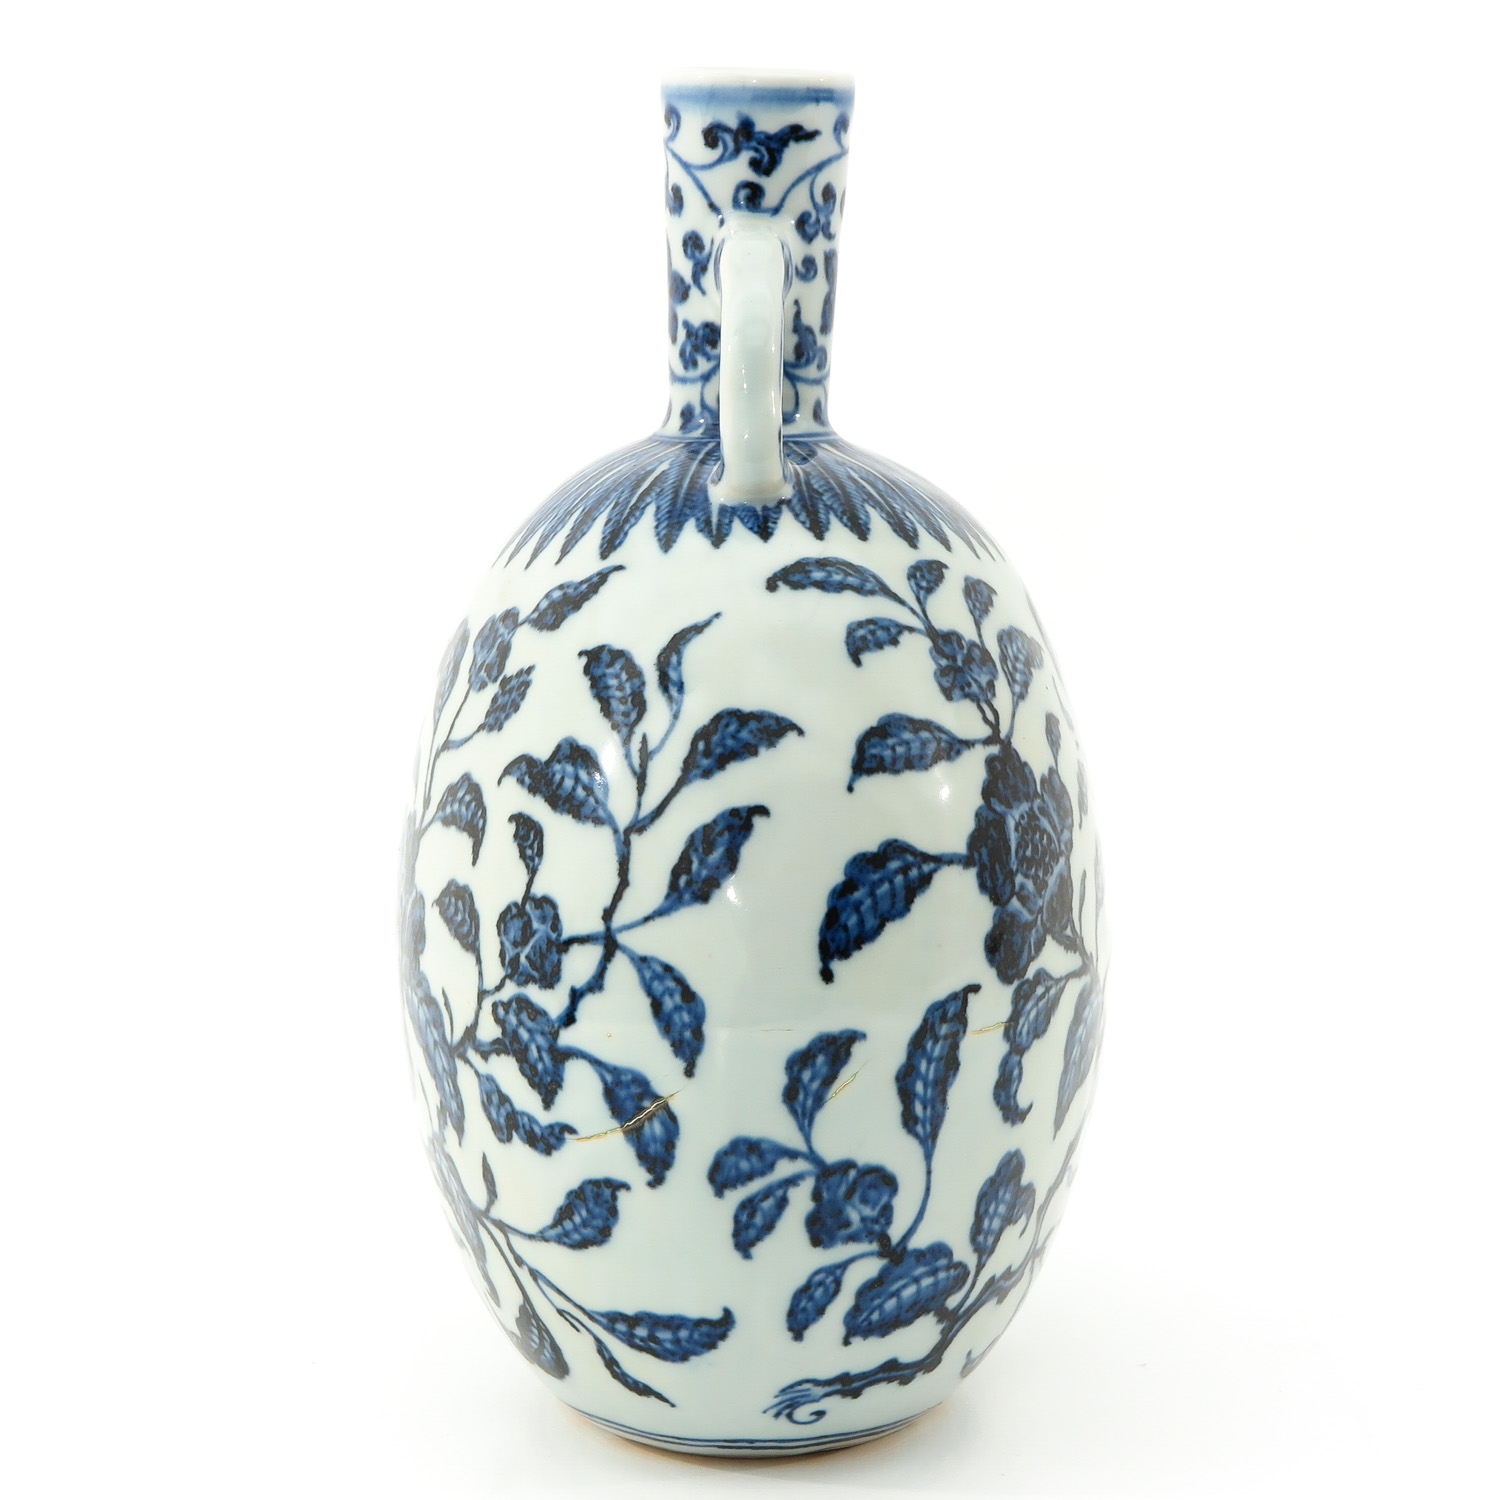 A Blue and White Moon Bottle - Image 2 of 9